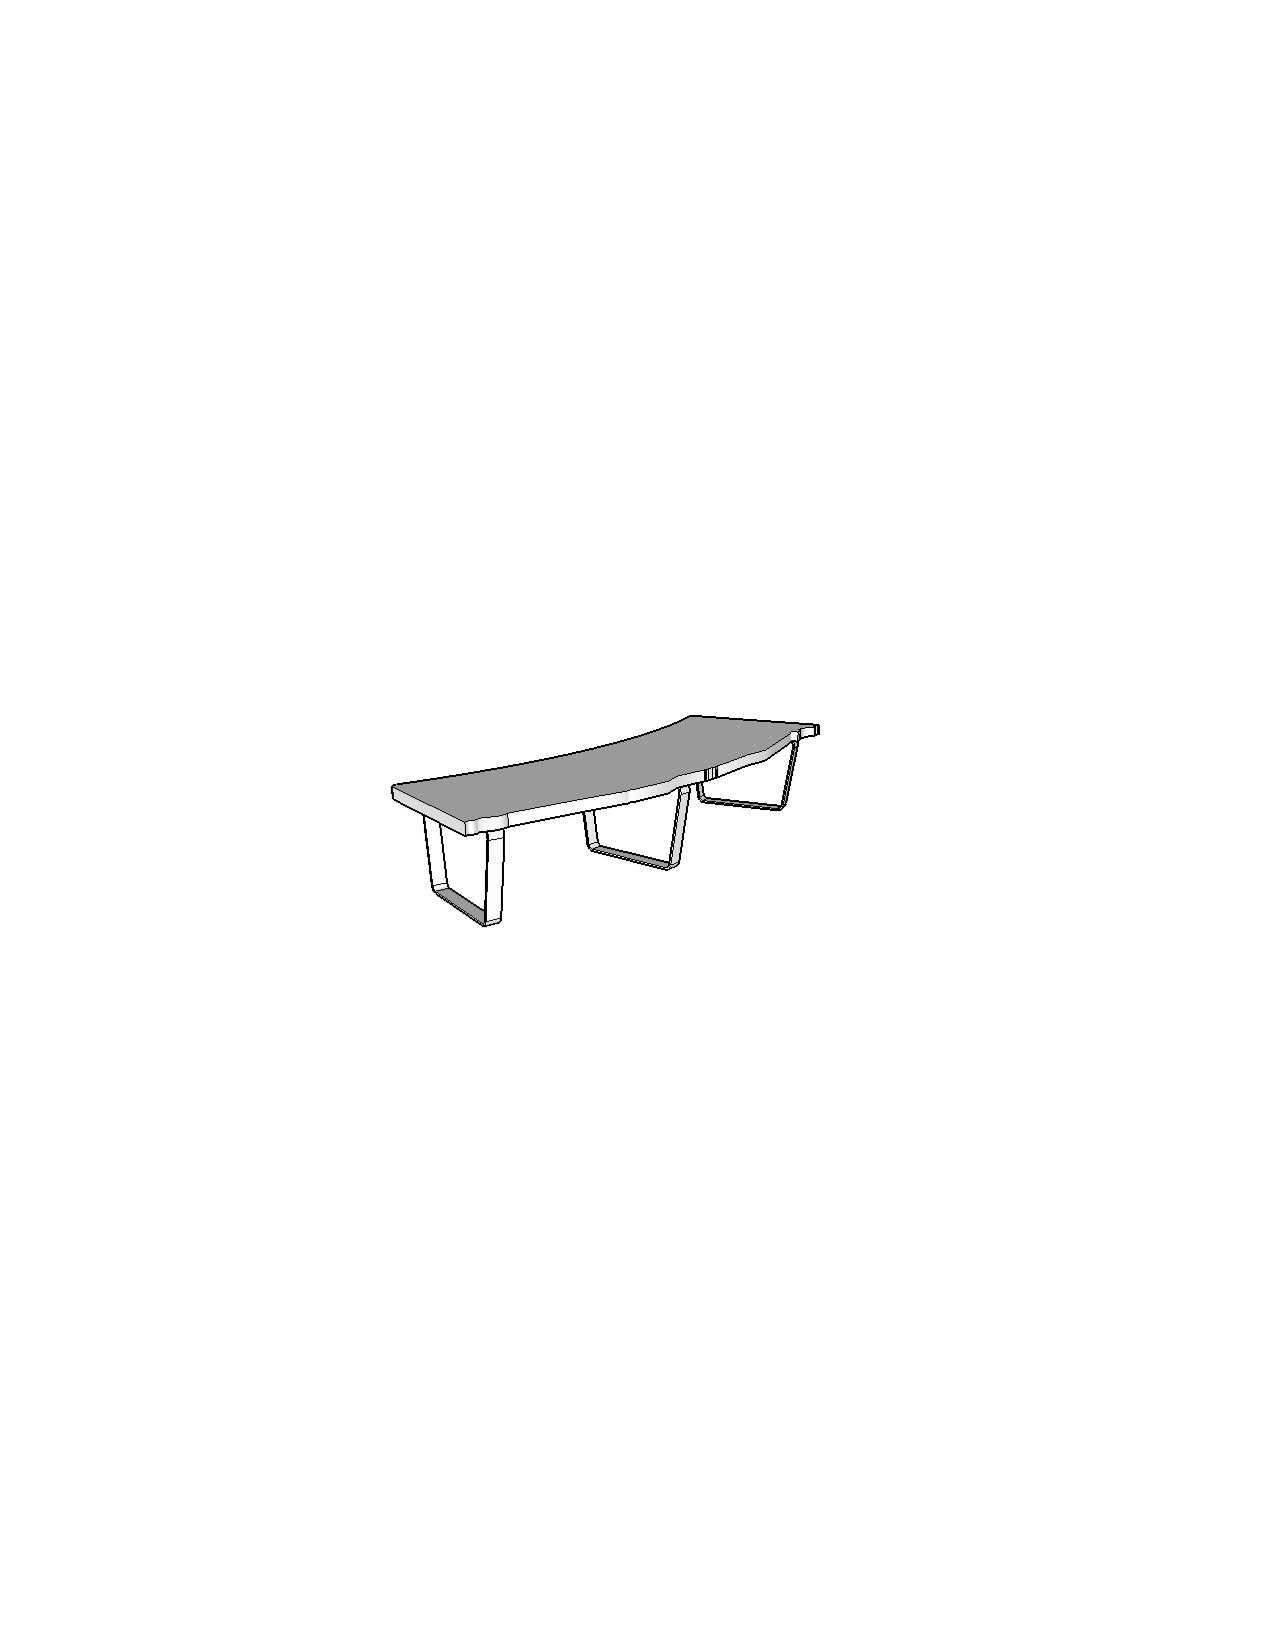 CIIS Slab Bench Single.jpg